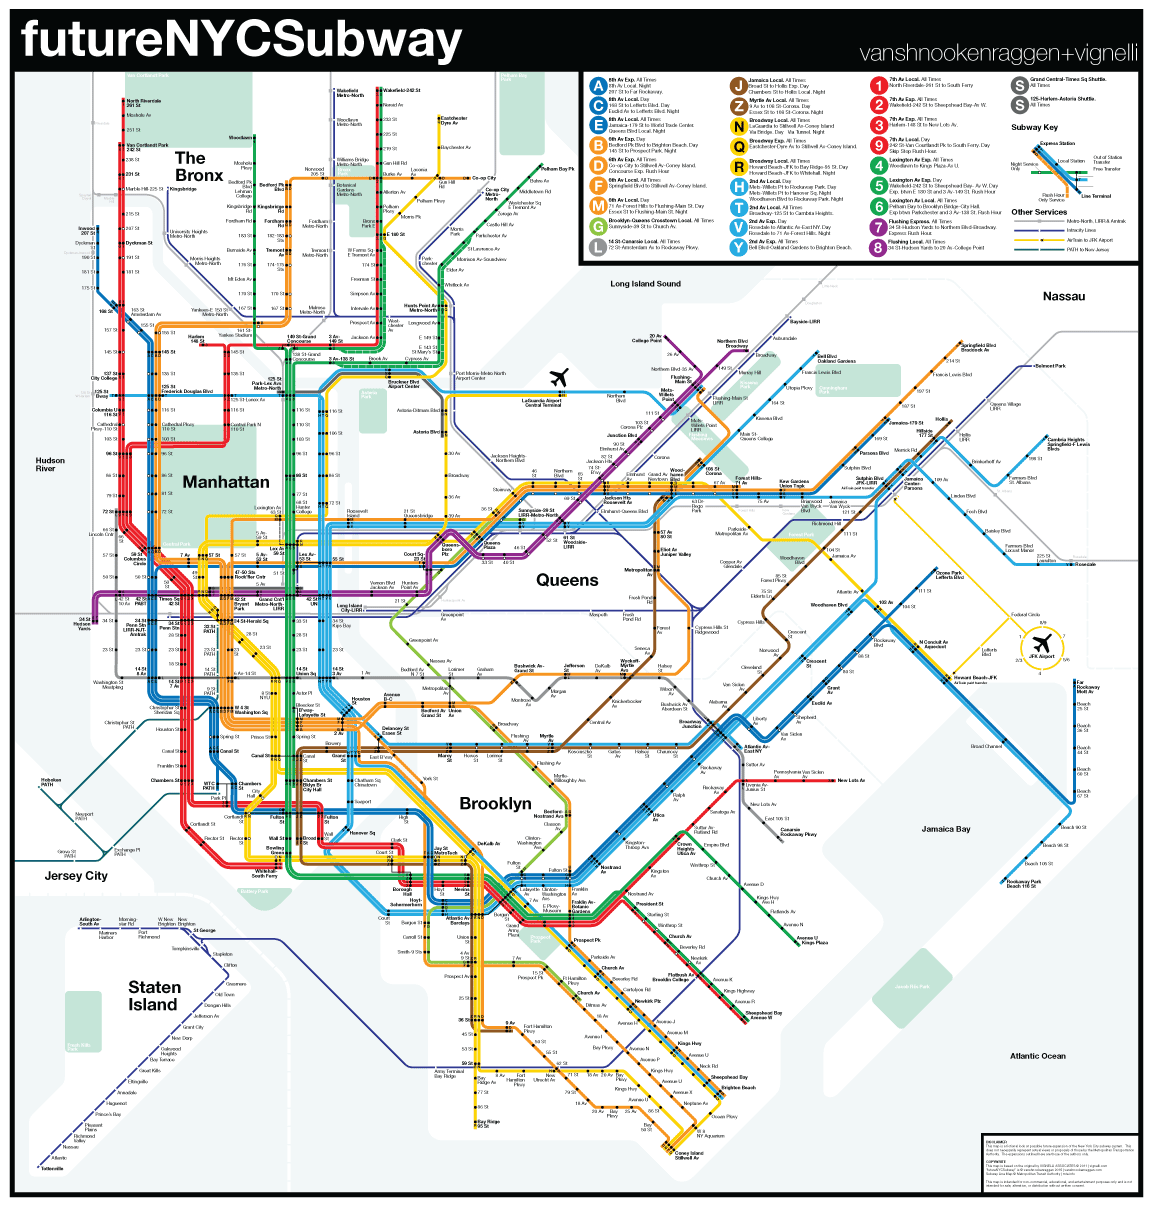 Subway Map Pdf Chicago.Futurenycsubway V4 Vanshnookenraggen